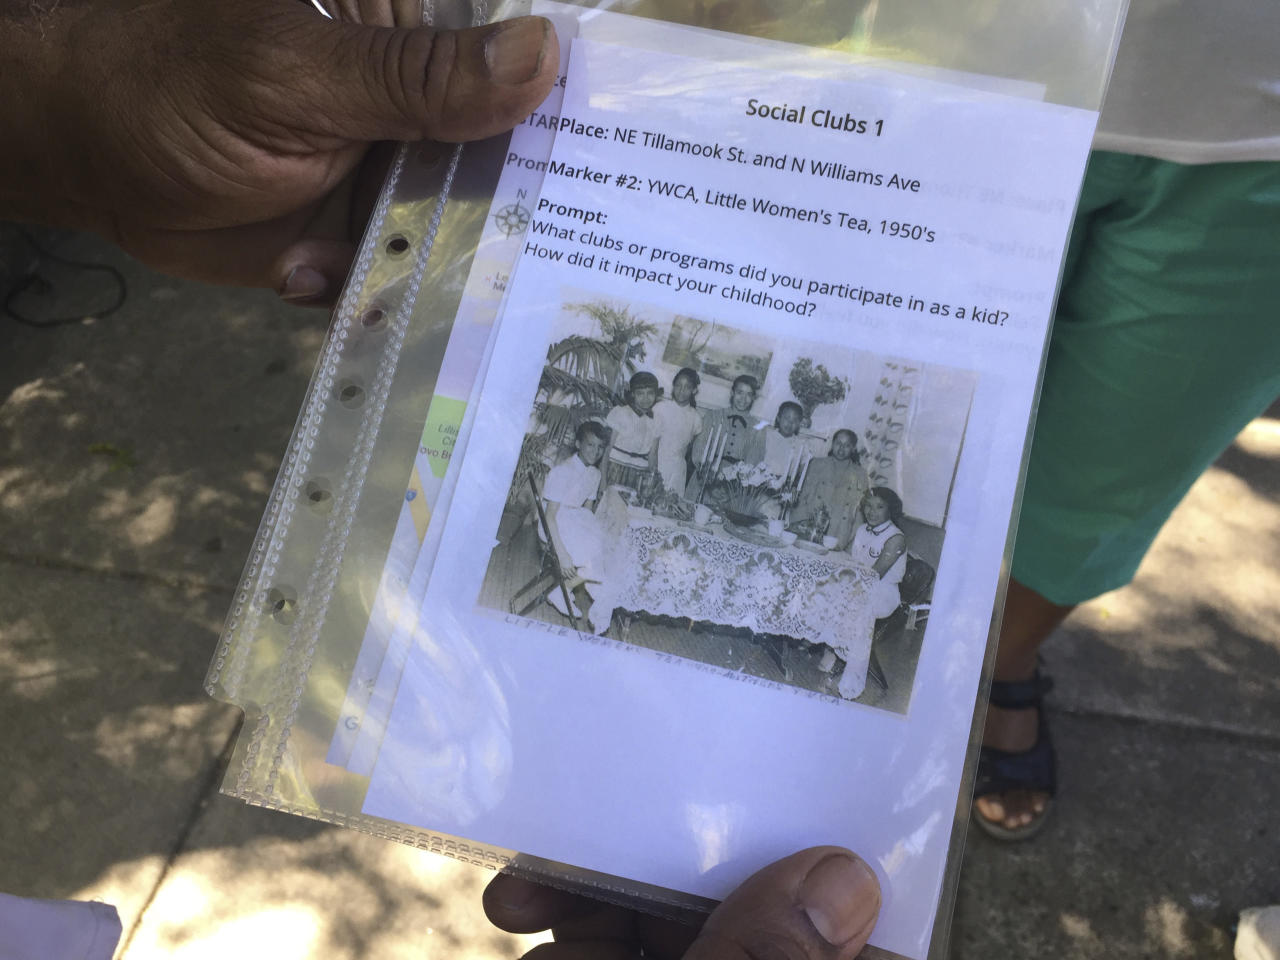 In this photo taken July 6, 2017, a community photo is shown in North Portland, Ore. A study at Oregon Health & Science University uses old community photos as prompts to help test whether reminiscence can help African-American seniors stay sharp and slow early memory loss. (AP Photos/Gillian Flaccus)